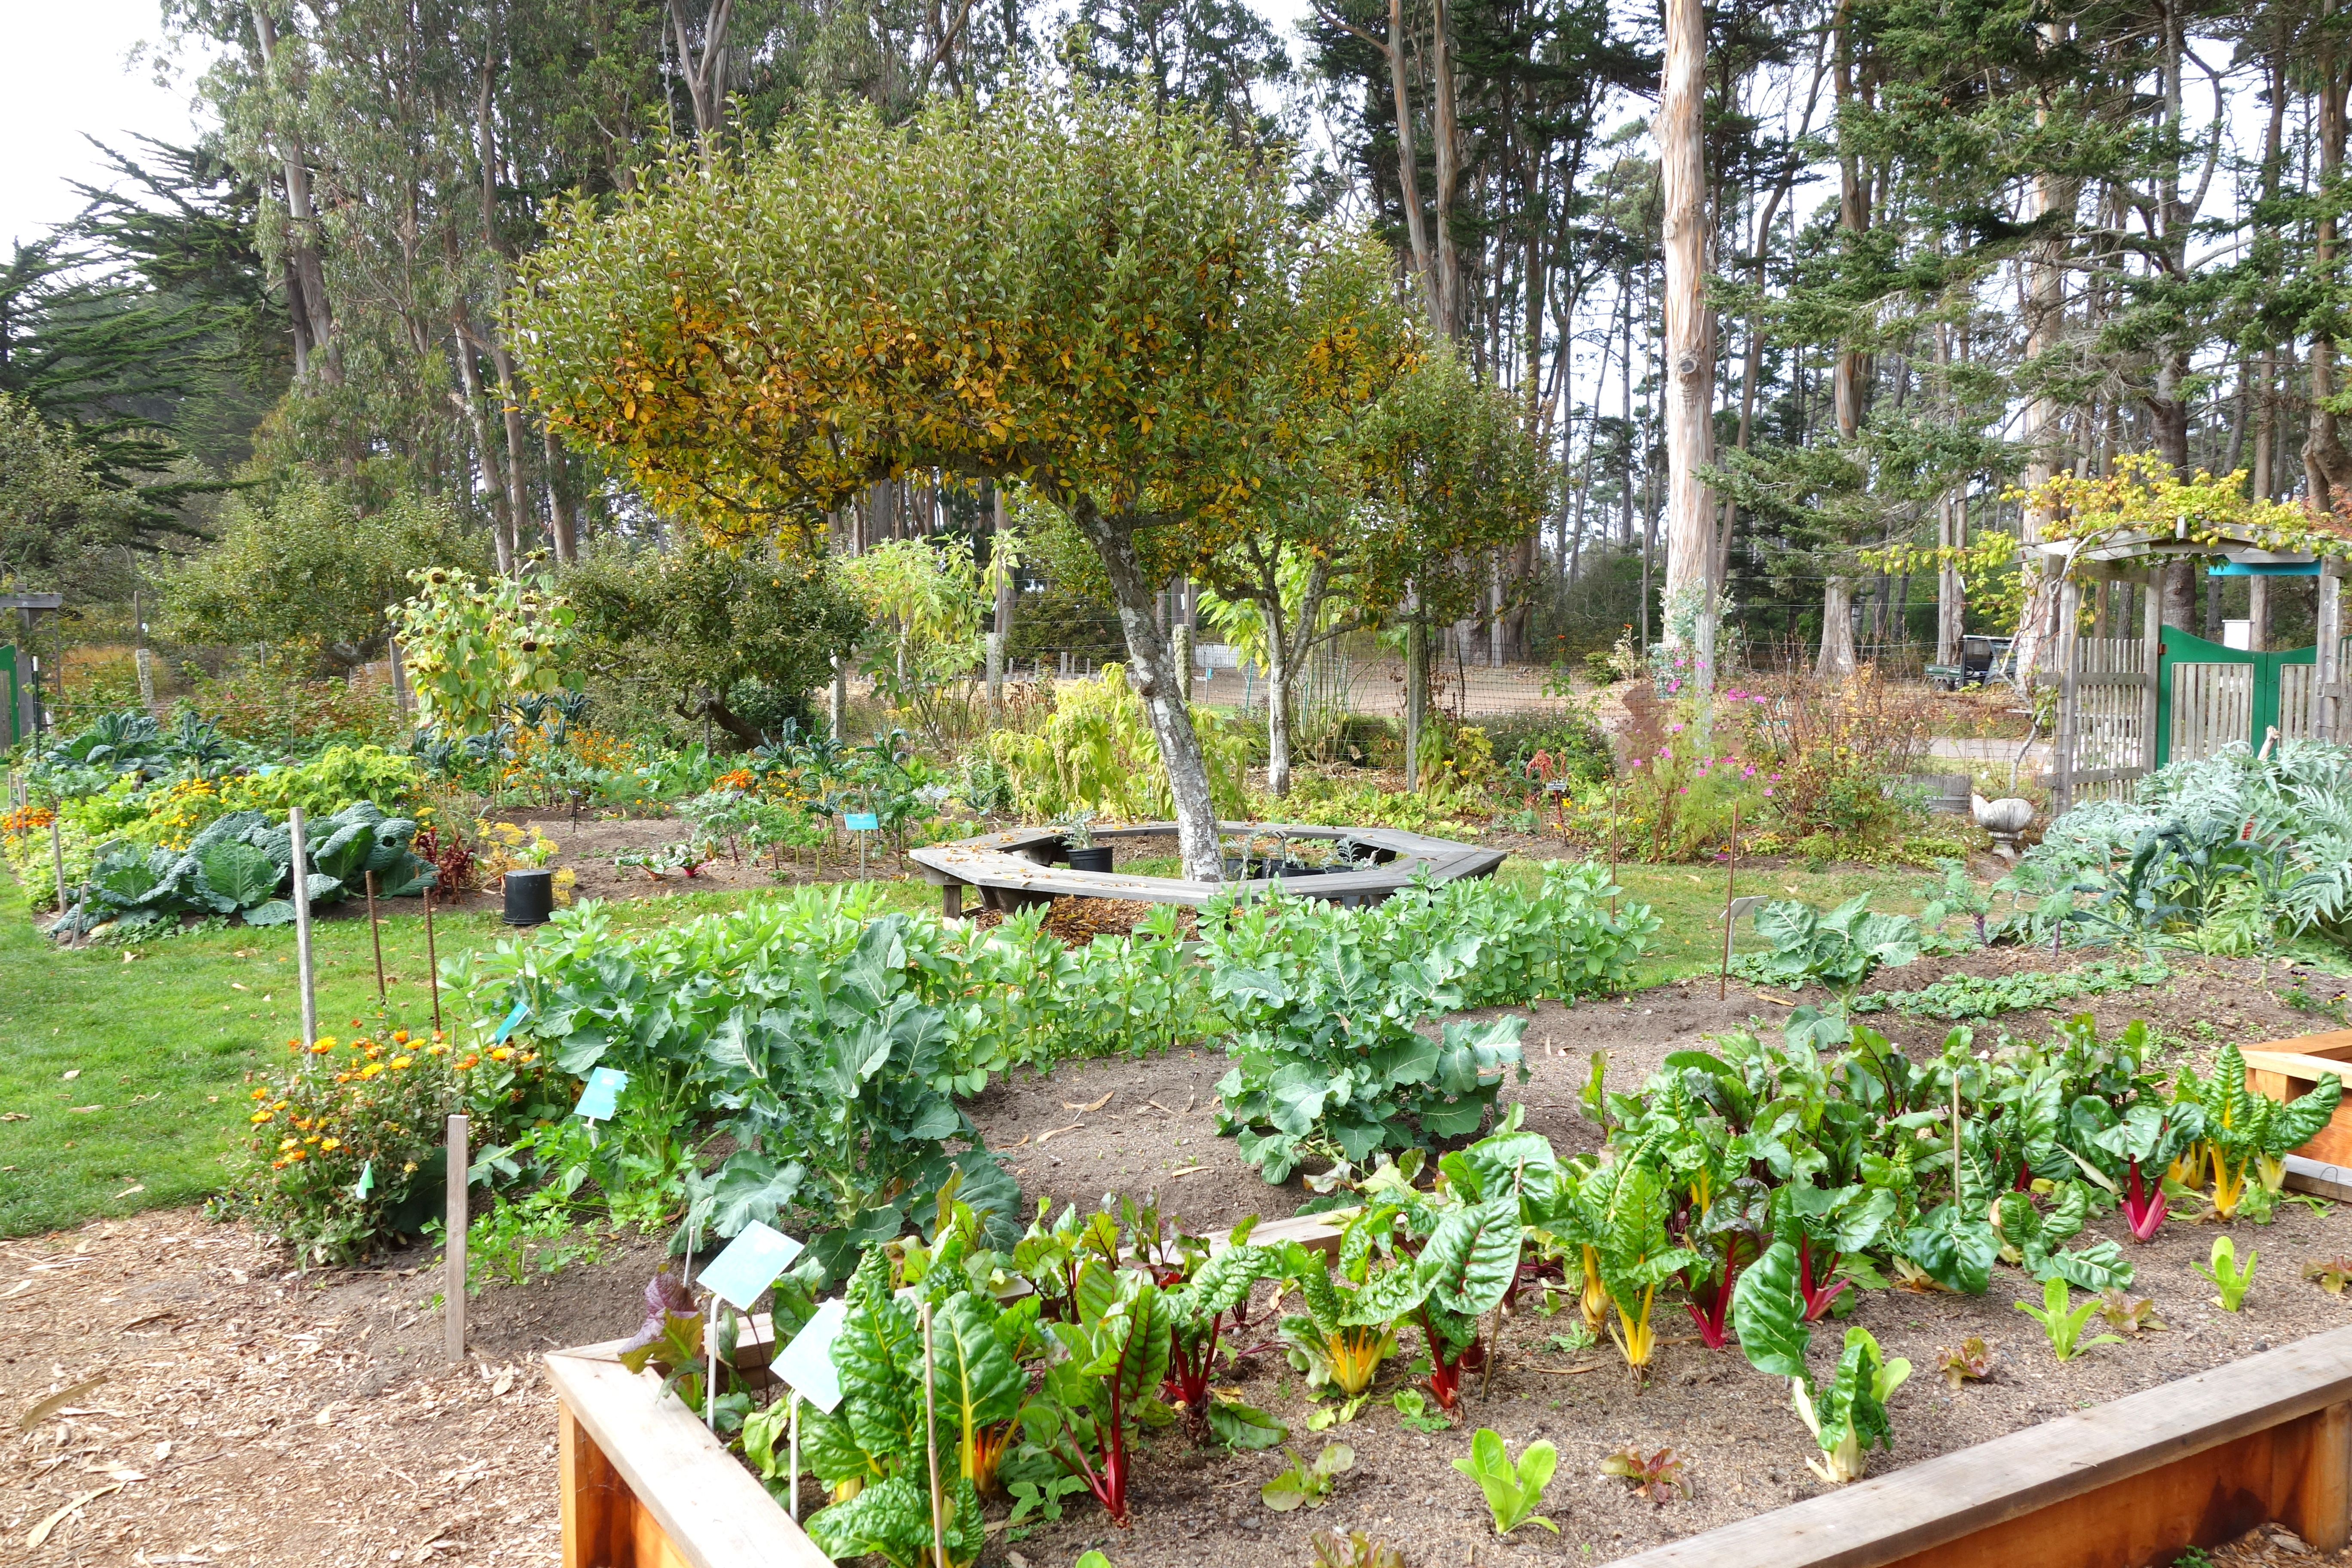 File:Vegetable Garden   Mendocino Coast Botanical Gardens   DSC02172.JPG